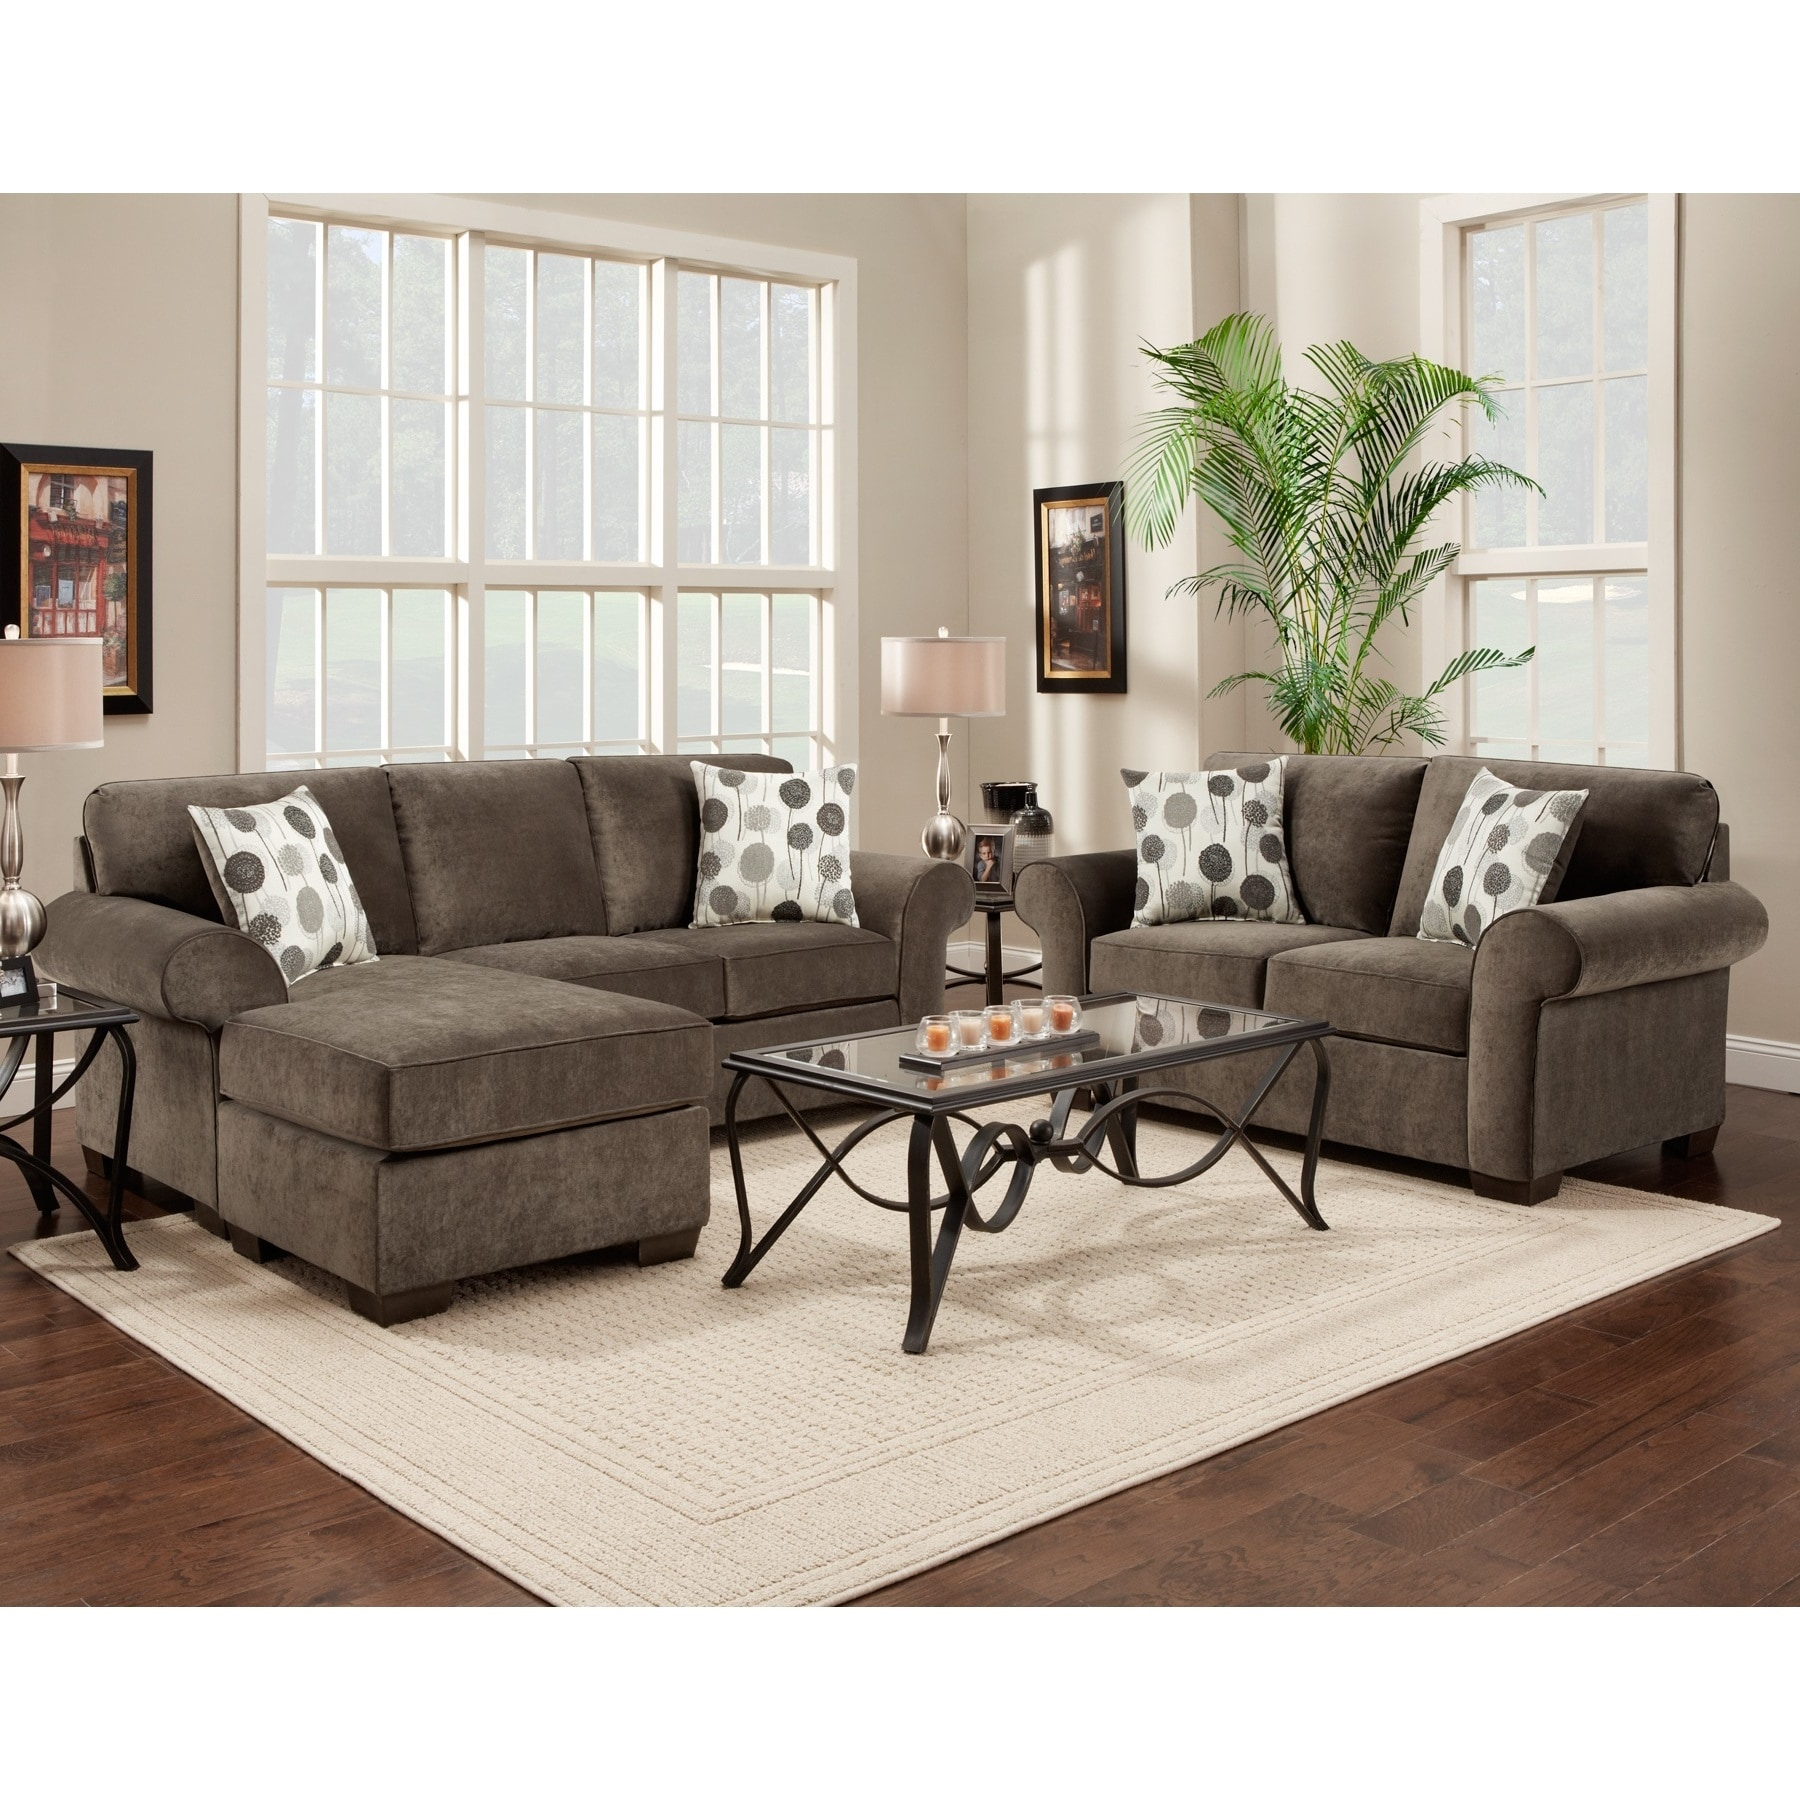 Sectional Loveseat – Tidex In Famous Turdur 3 Piece Sectionals With Laf Loveseat (Gallery 18 of 20)